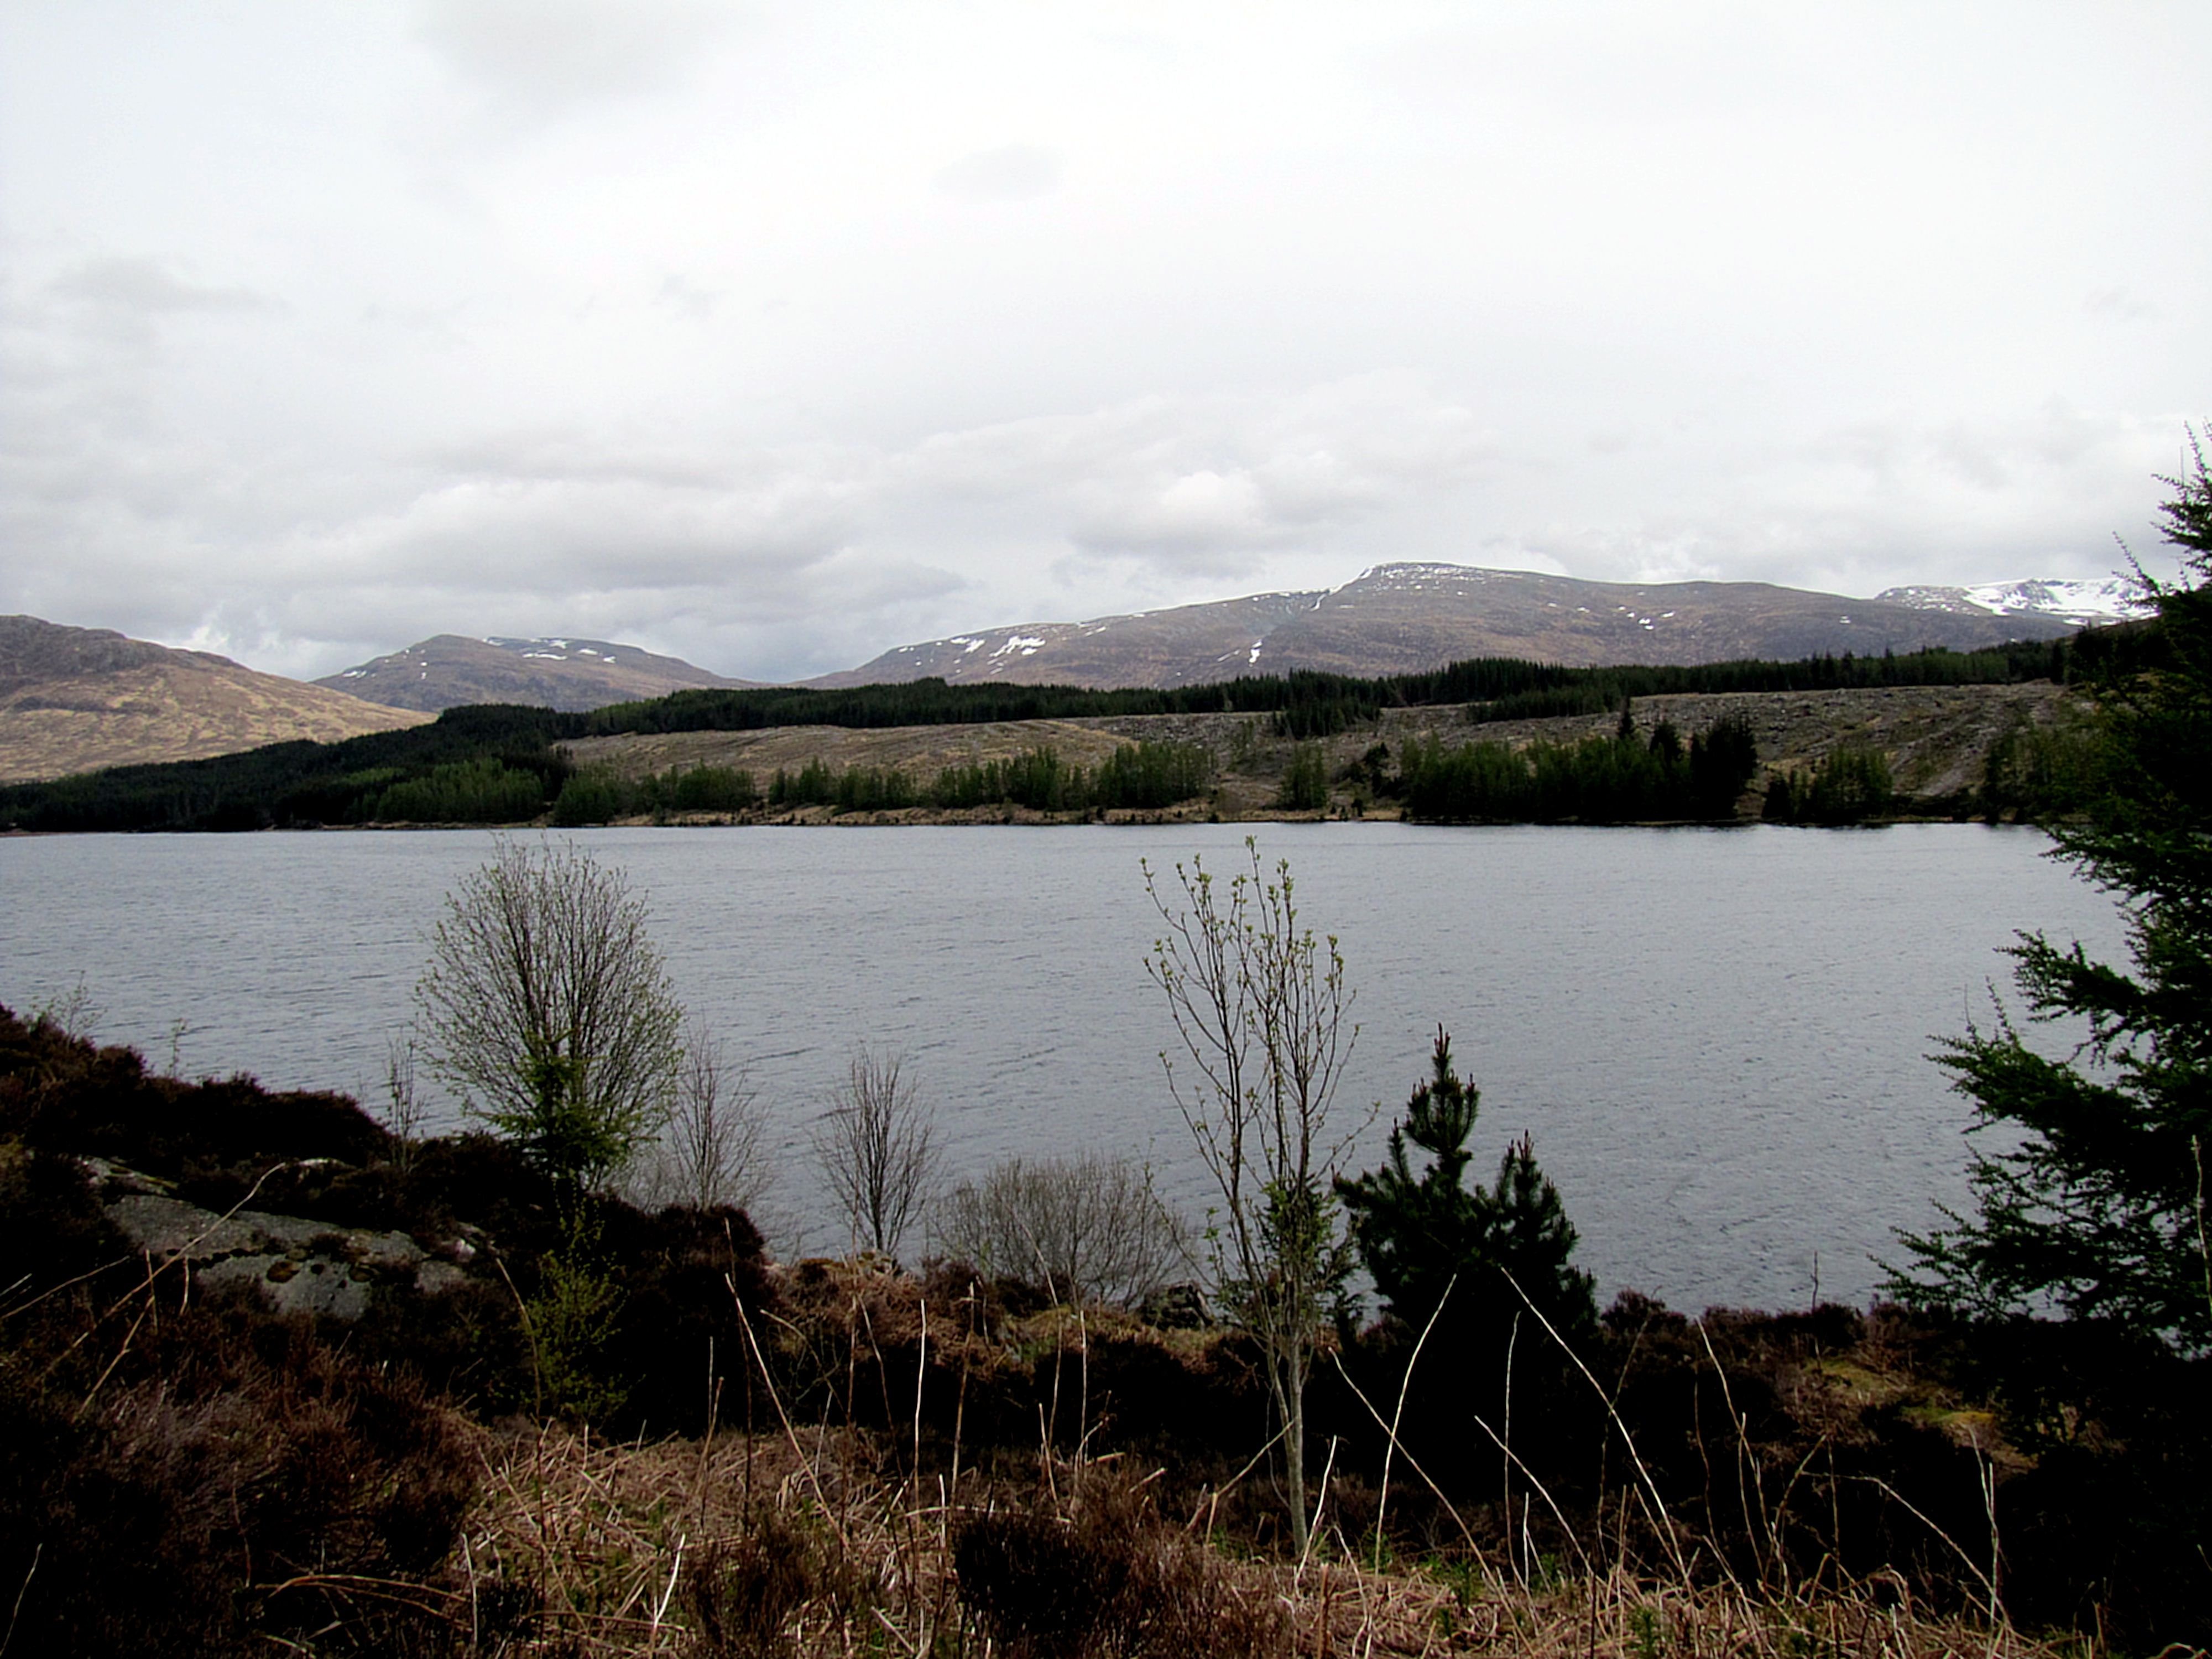 This is Loch Lagan. Again, beautiful scenery.